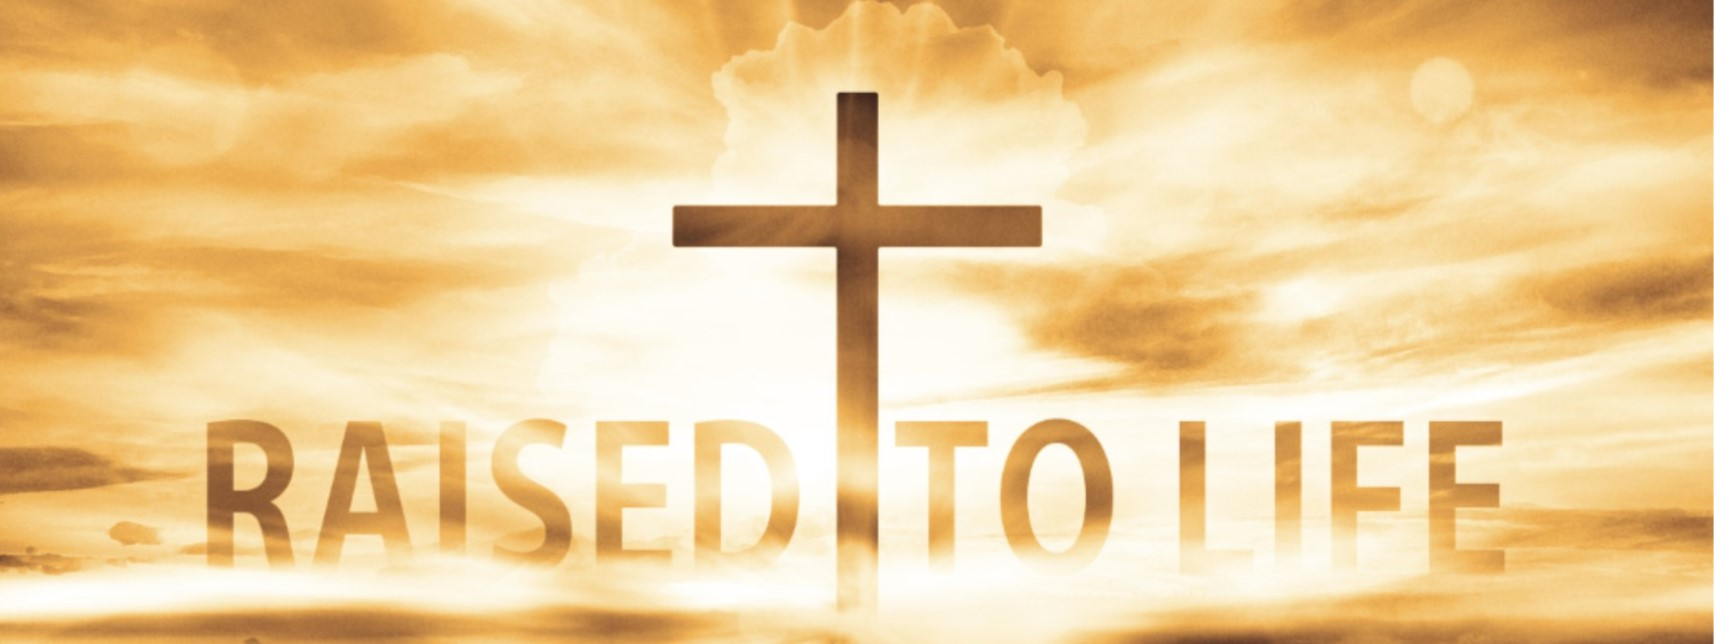 Resurrection Sunday- One Service at 10:15am